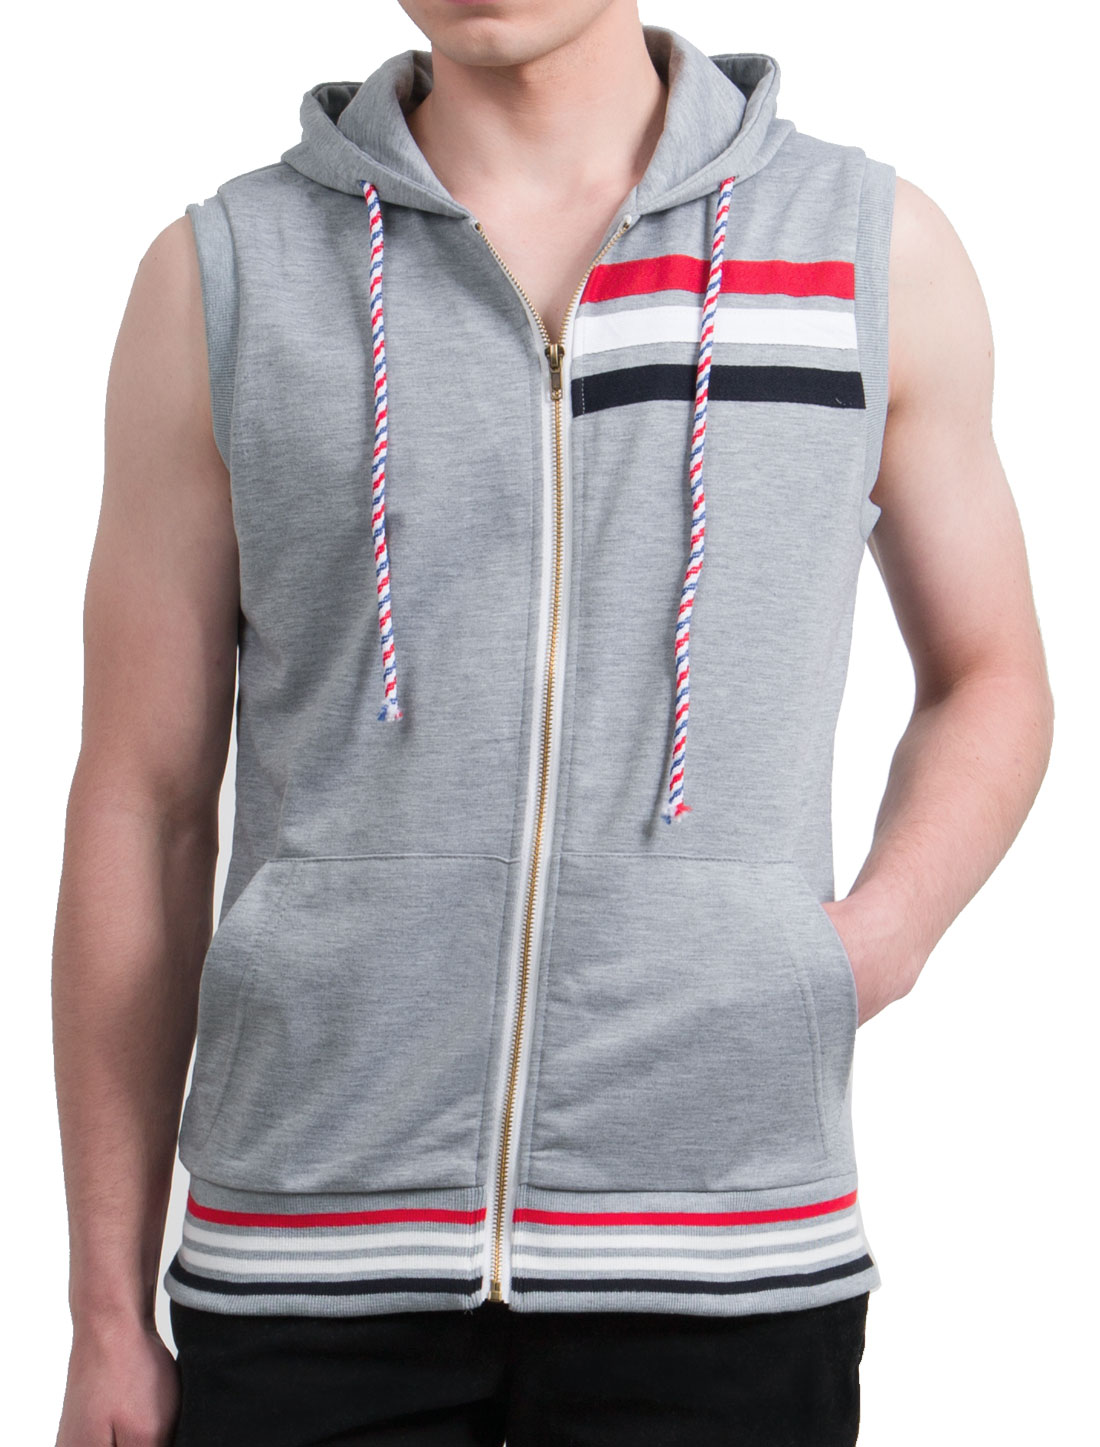 Men Zip Down Front Pockets Drawstring Stripes Hoodie Vest Light Gray S